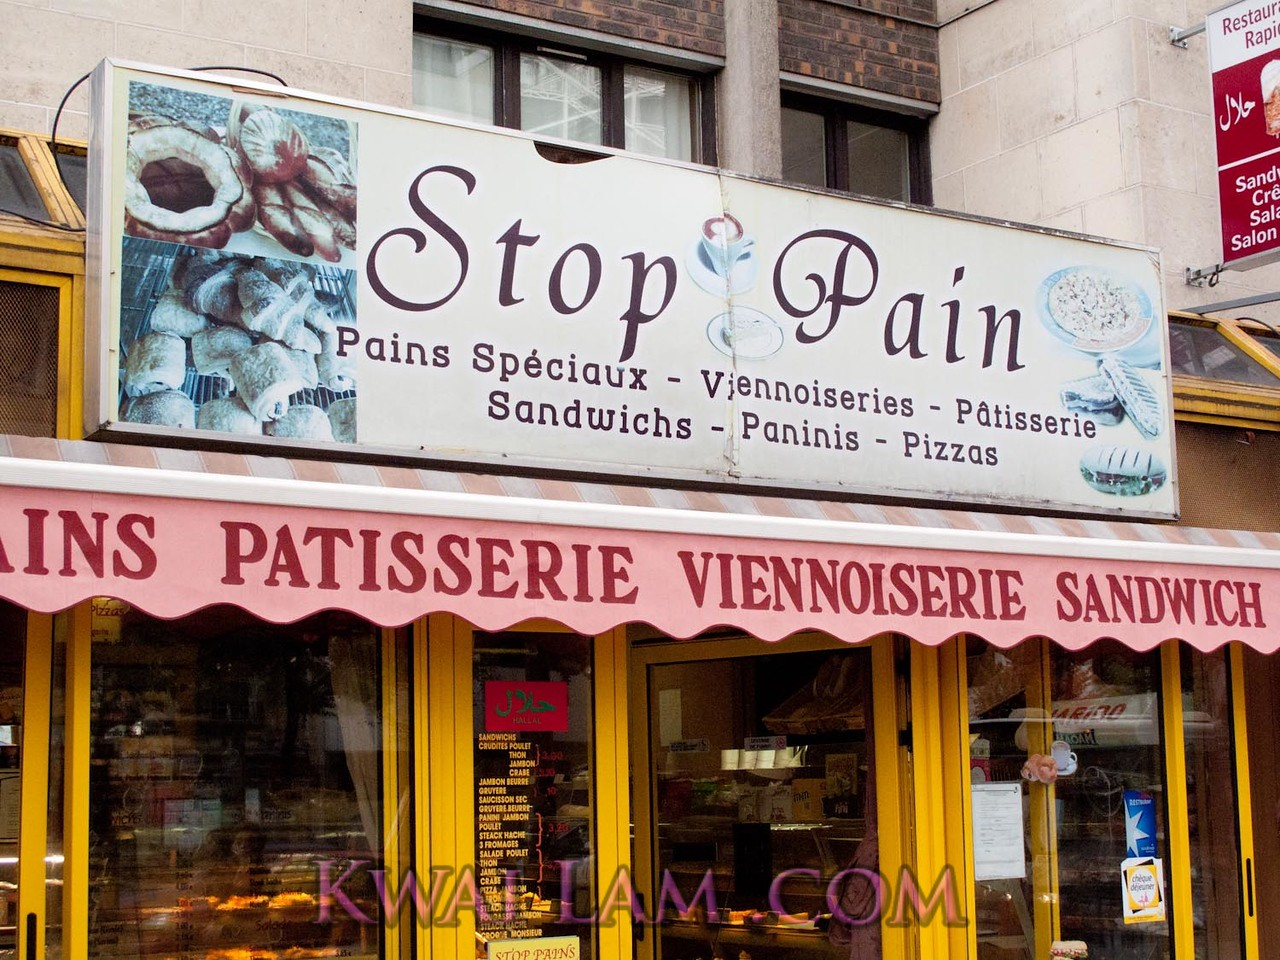 Stop Pain, it doesn't hurt to eat bread, does it? For Pulakli. Rue, d'Italie, Paris